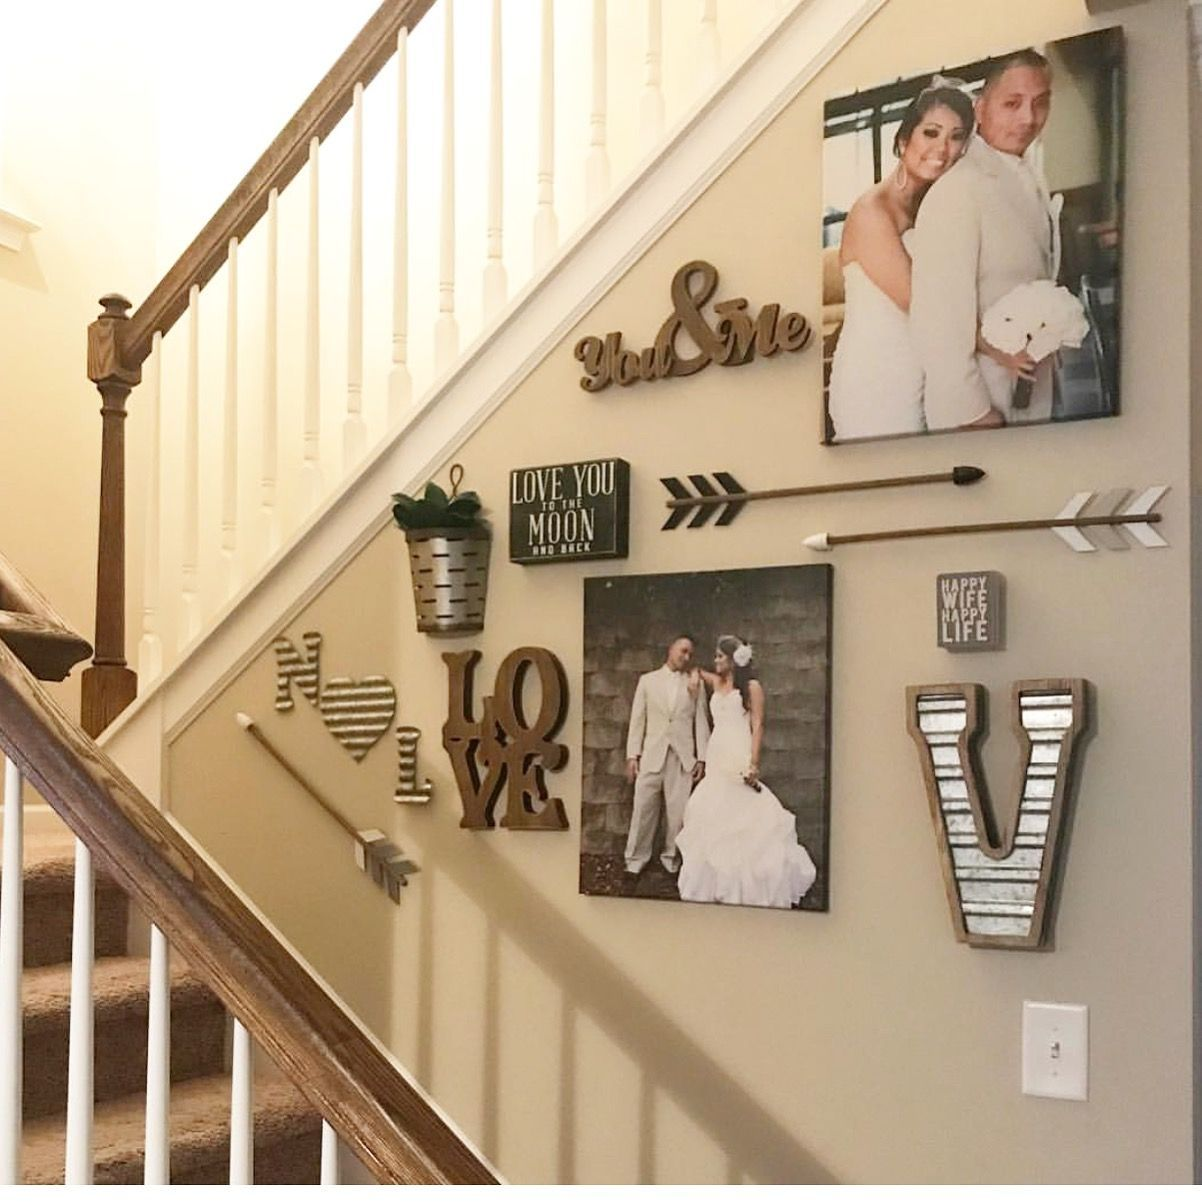 My Stairway Wall Gallery Stairwaywalldecor Staircase Wall Decor